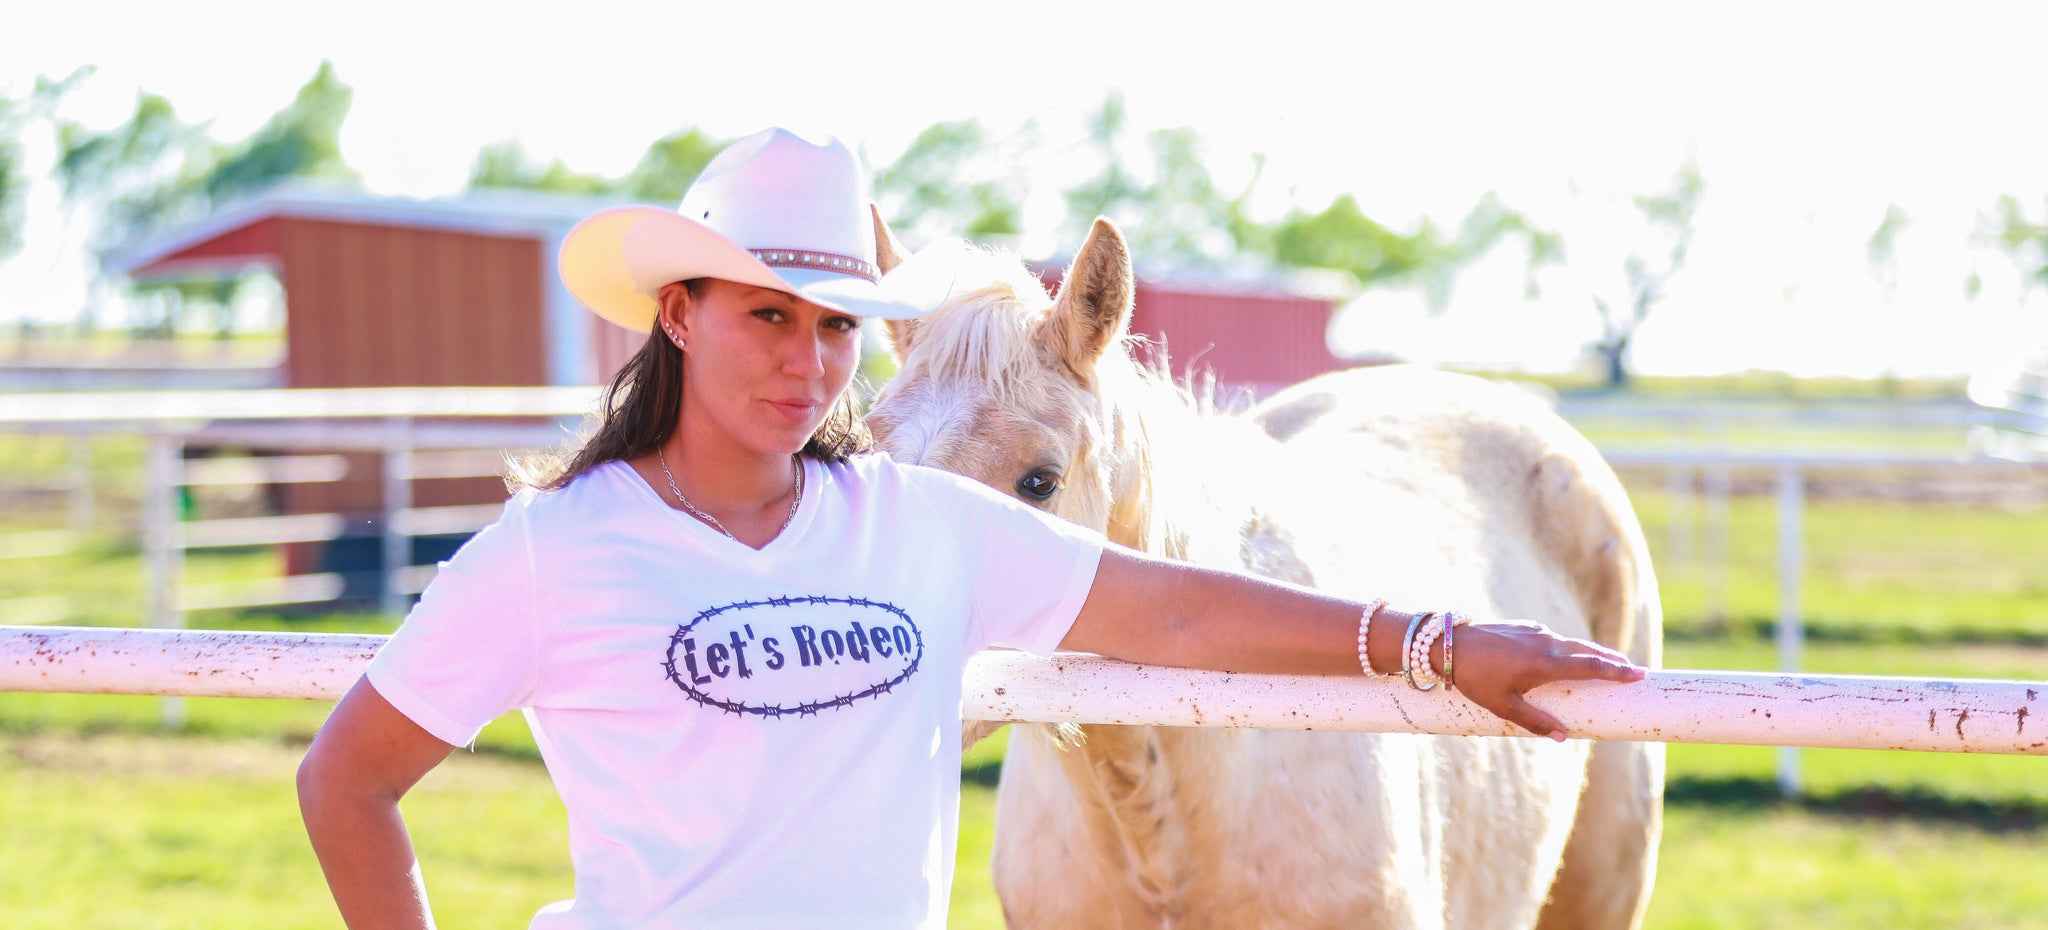 Let's Rodeo Short Sleeve T-Shirt